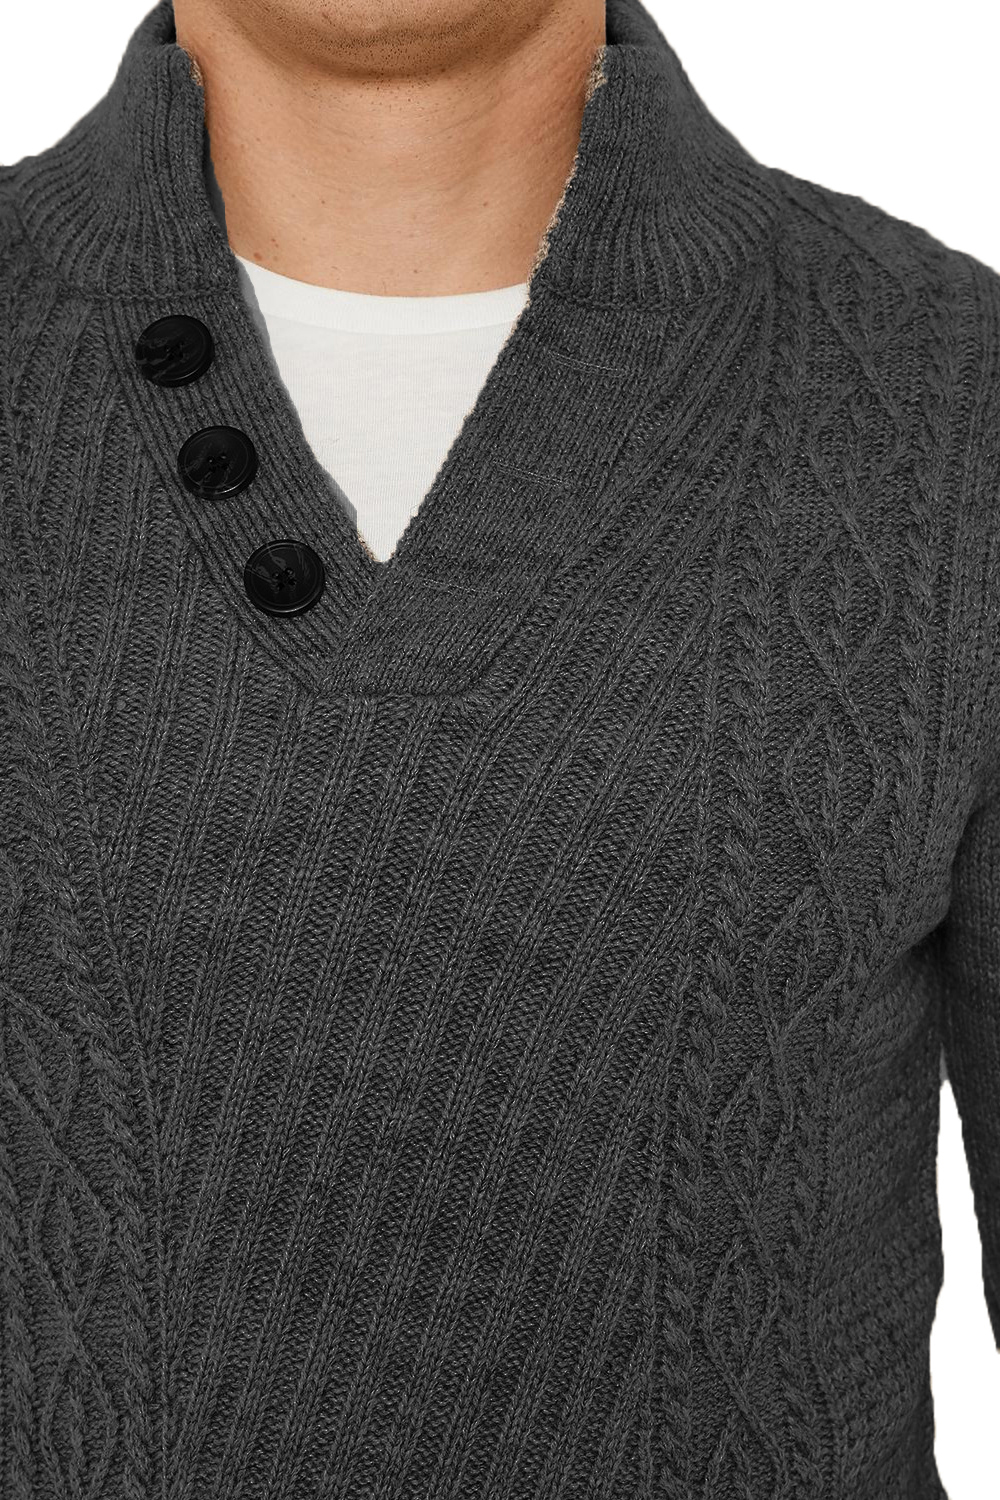 Threadbare-Wray-Mens-Top-Cable-Knited-Designer-Luxurious-Wool-Mix-Raglan-Jumpers thumbnail 3